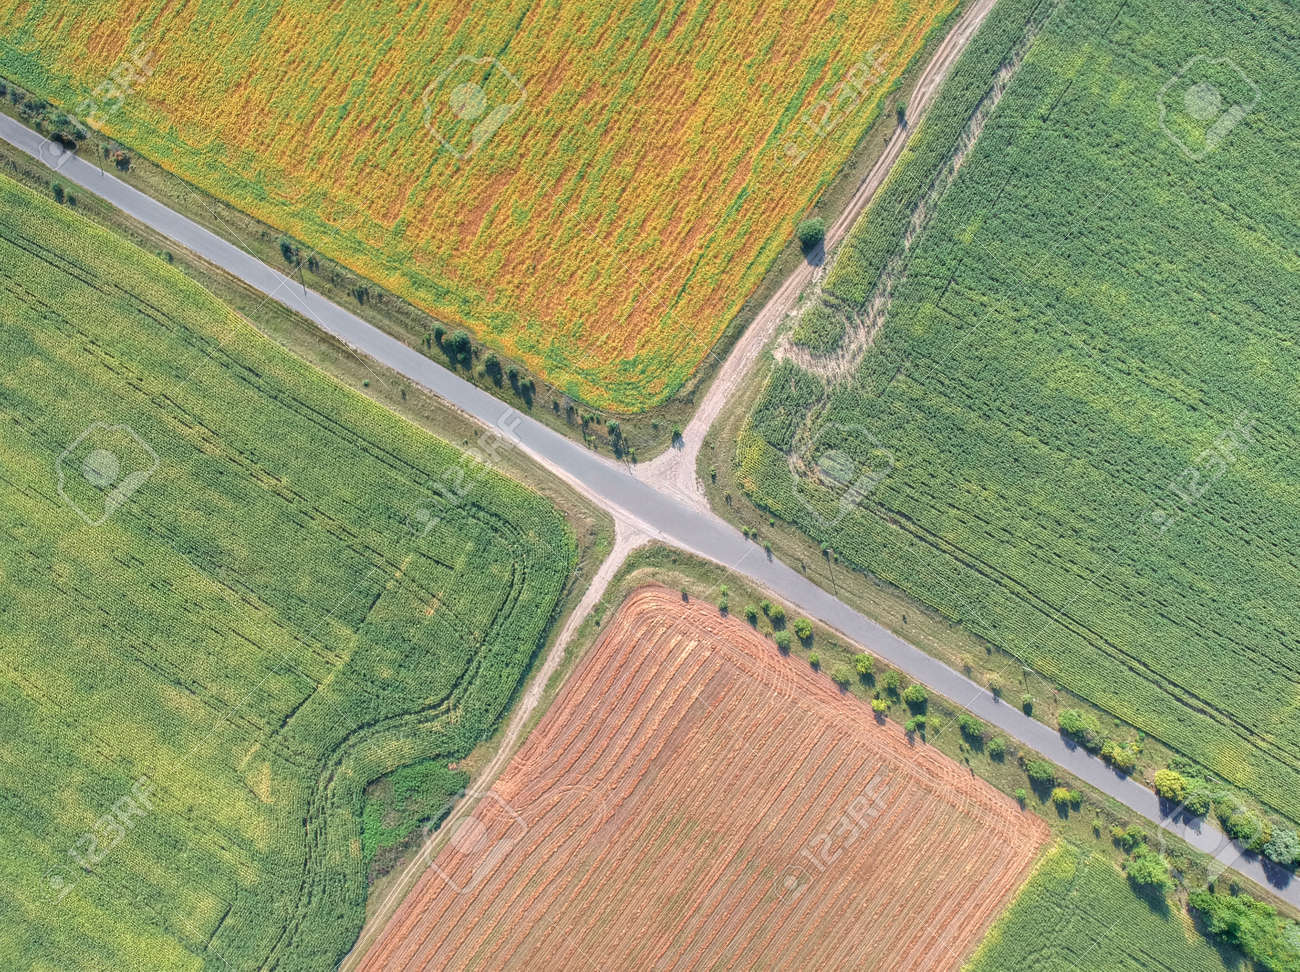 Aerial picture of the rural roads crossing the fields - 108851206